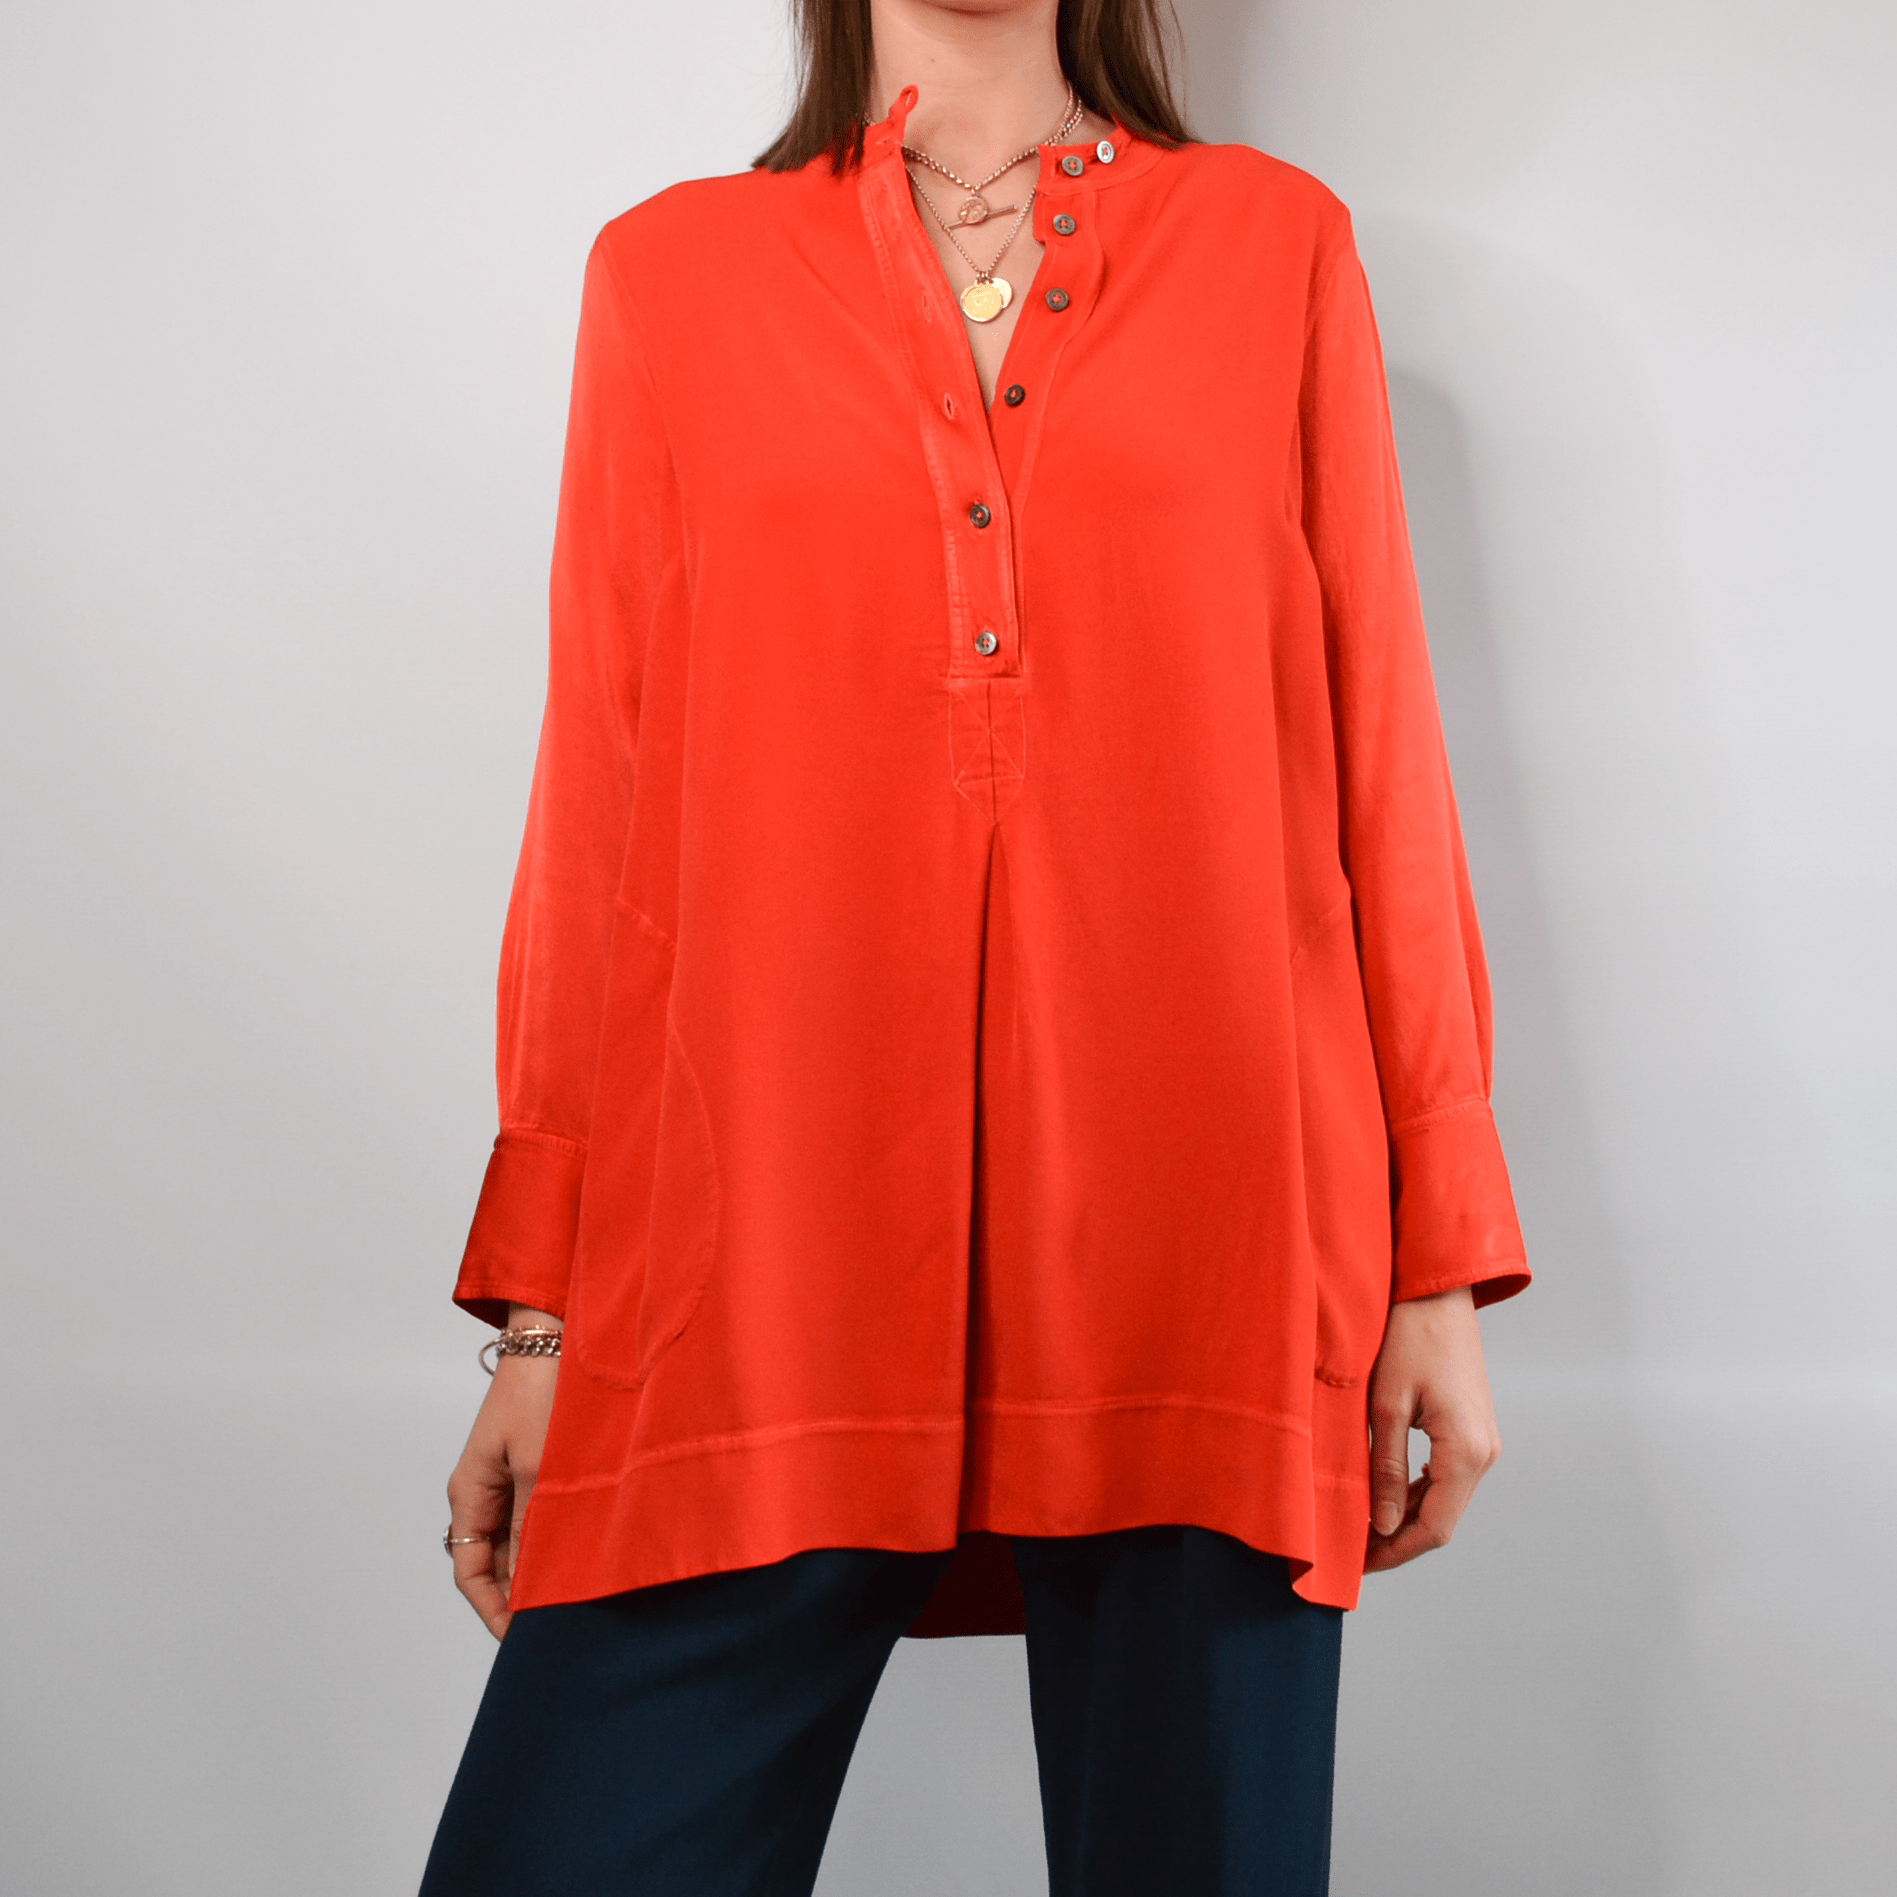 HW2 Orange Tunic Small